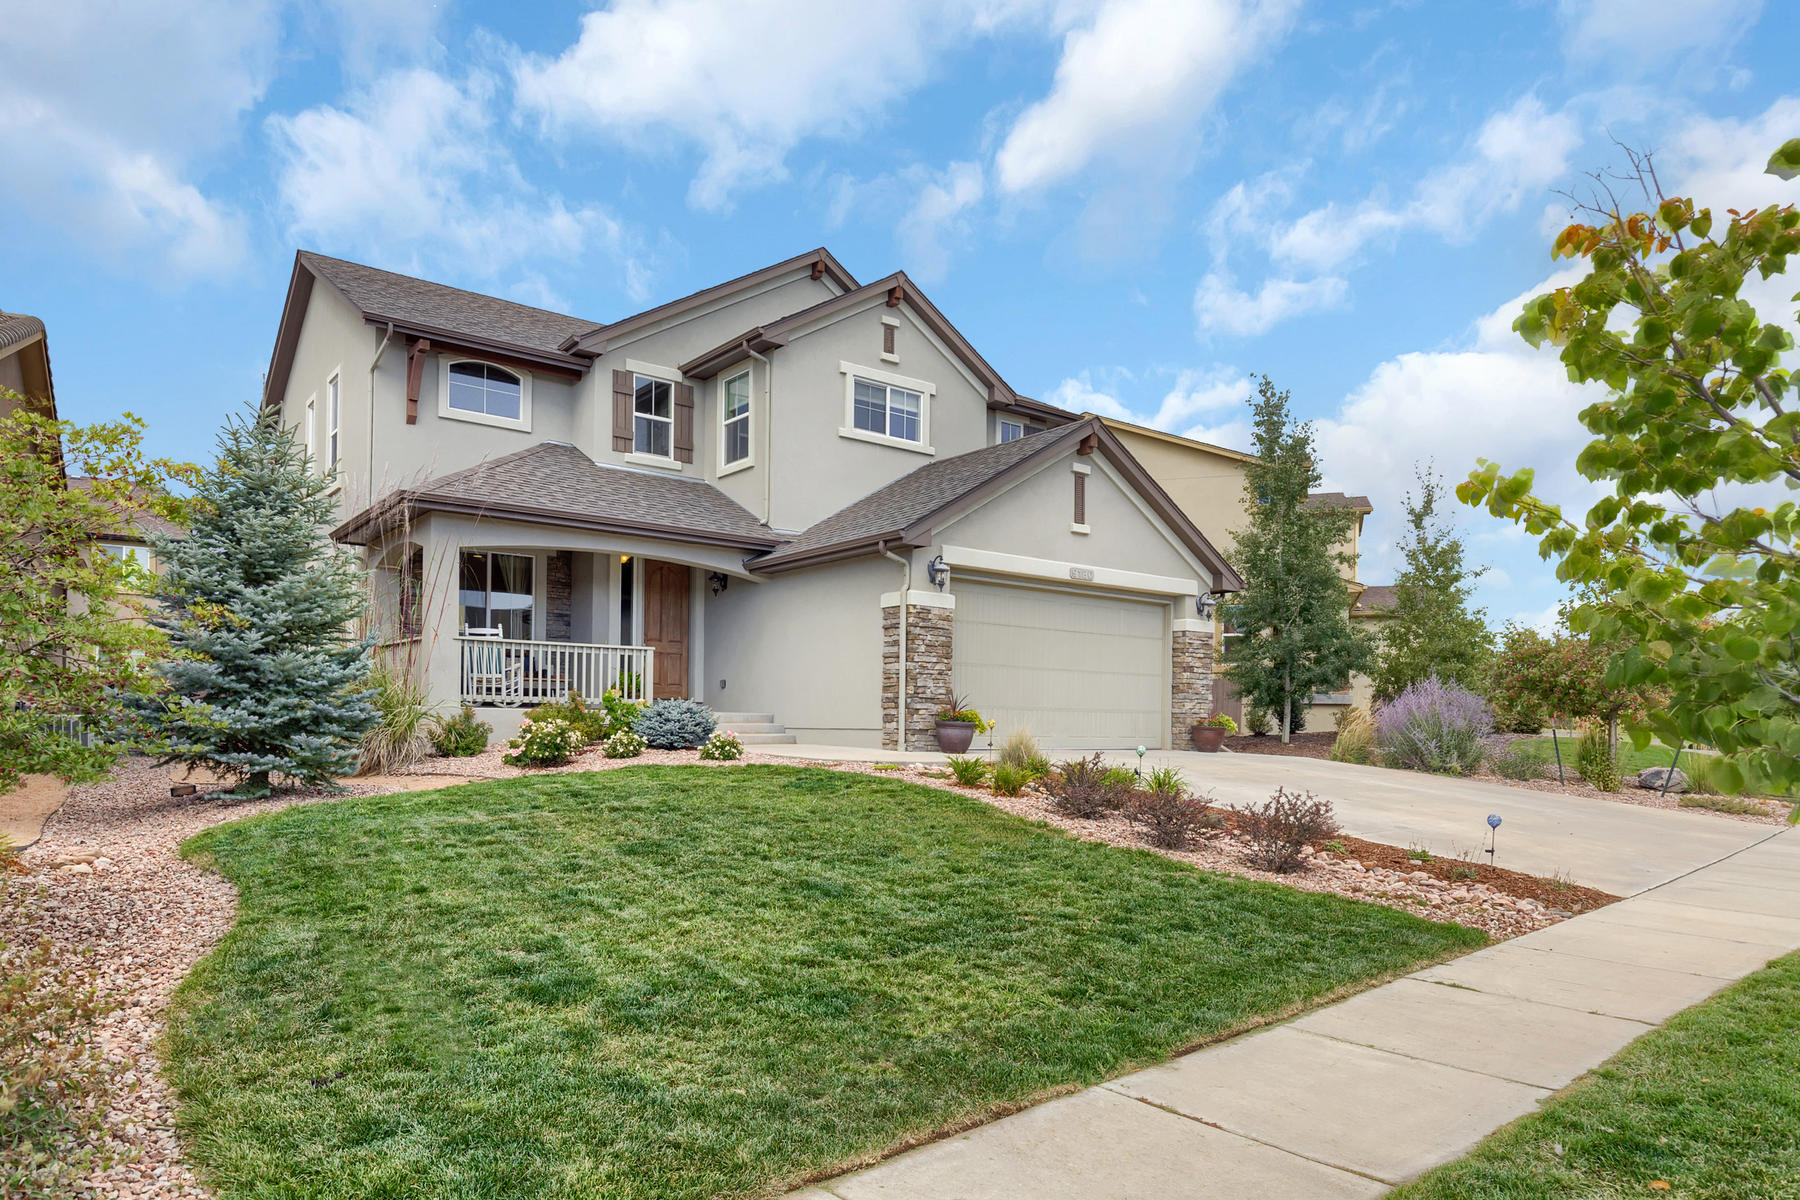 Single Family Home for Active at Spacious sunshine and a fantastic flow awaits 9180 Lizard Rock Trl Colorado Springs, Colorado 80924 United States